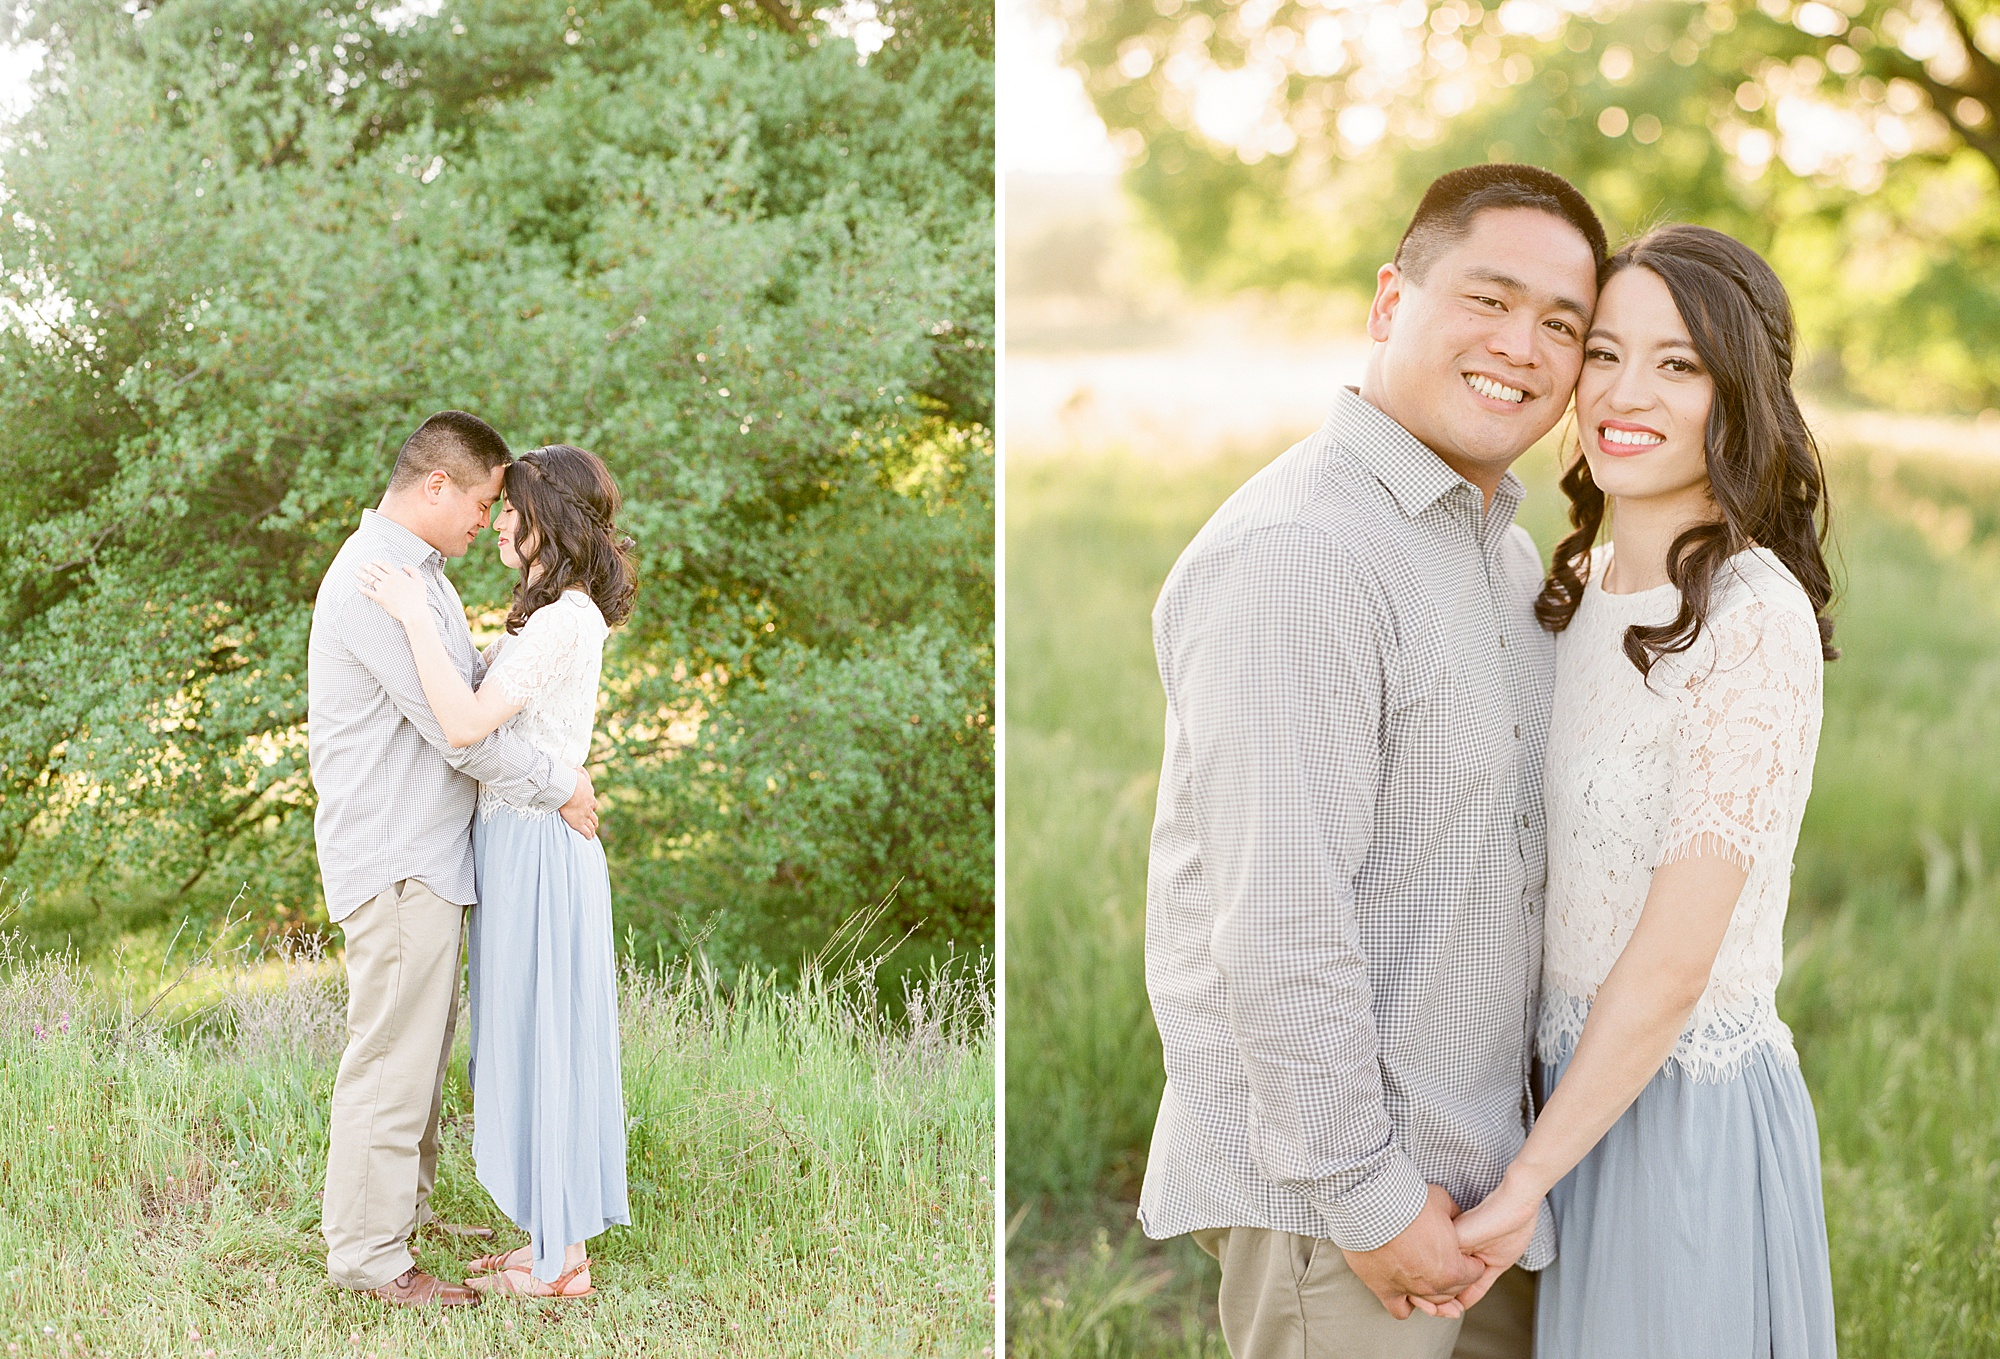 El Dorado Hills Engagement Session - Wendy and Danny - Ashley Baumgartner - Sacramento Wedding Photographer and Sacramento Wedding Photography - Bay Area Wedding Photographer_0004.jpg